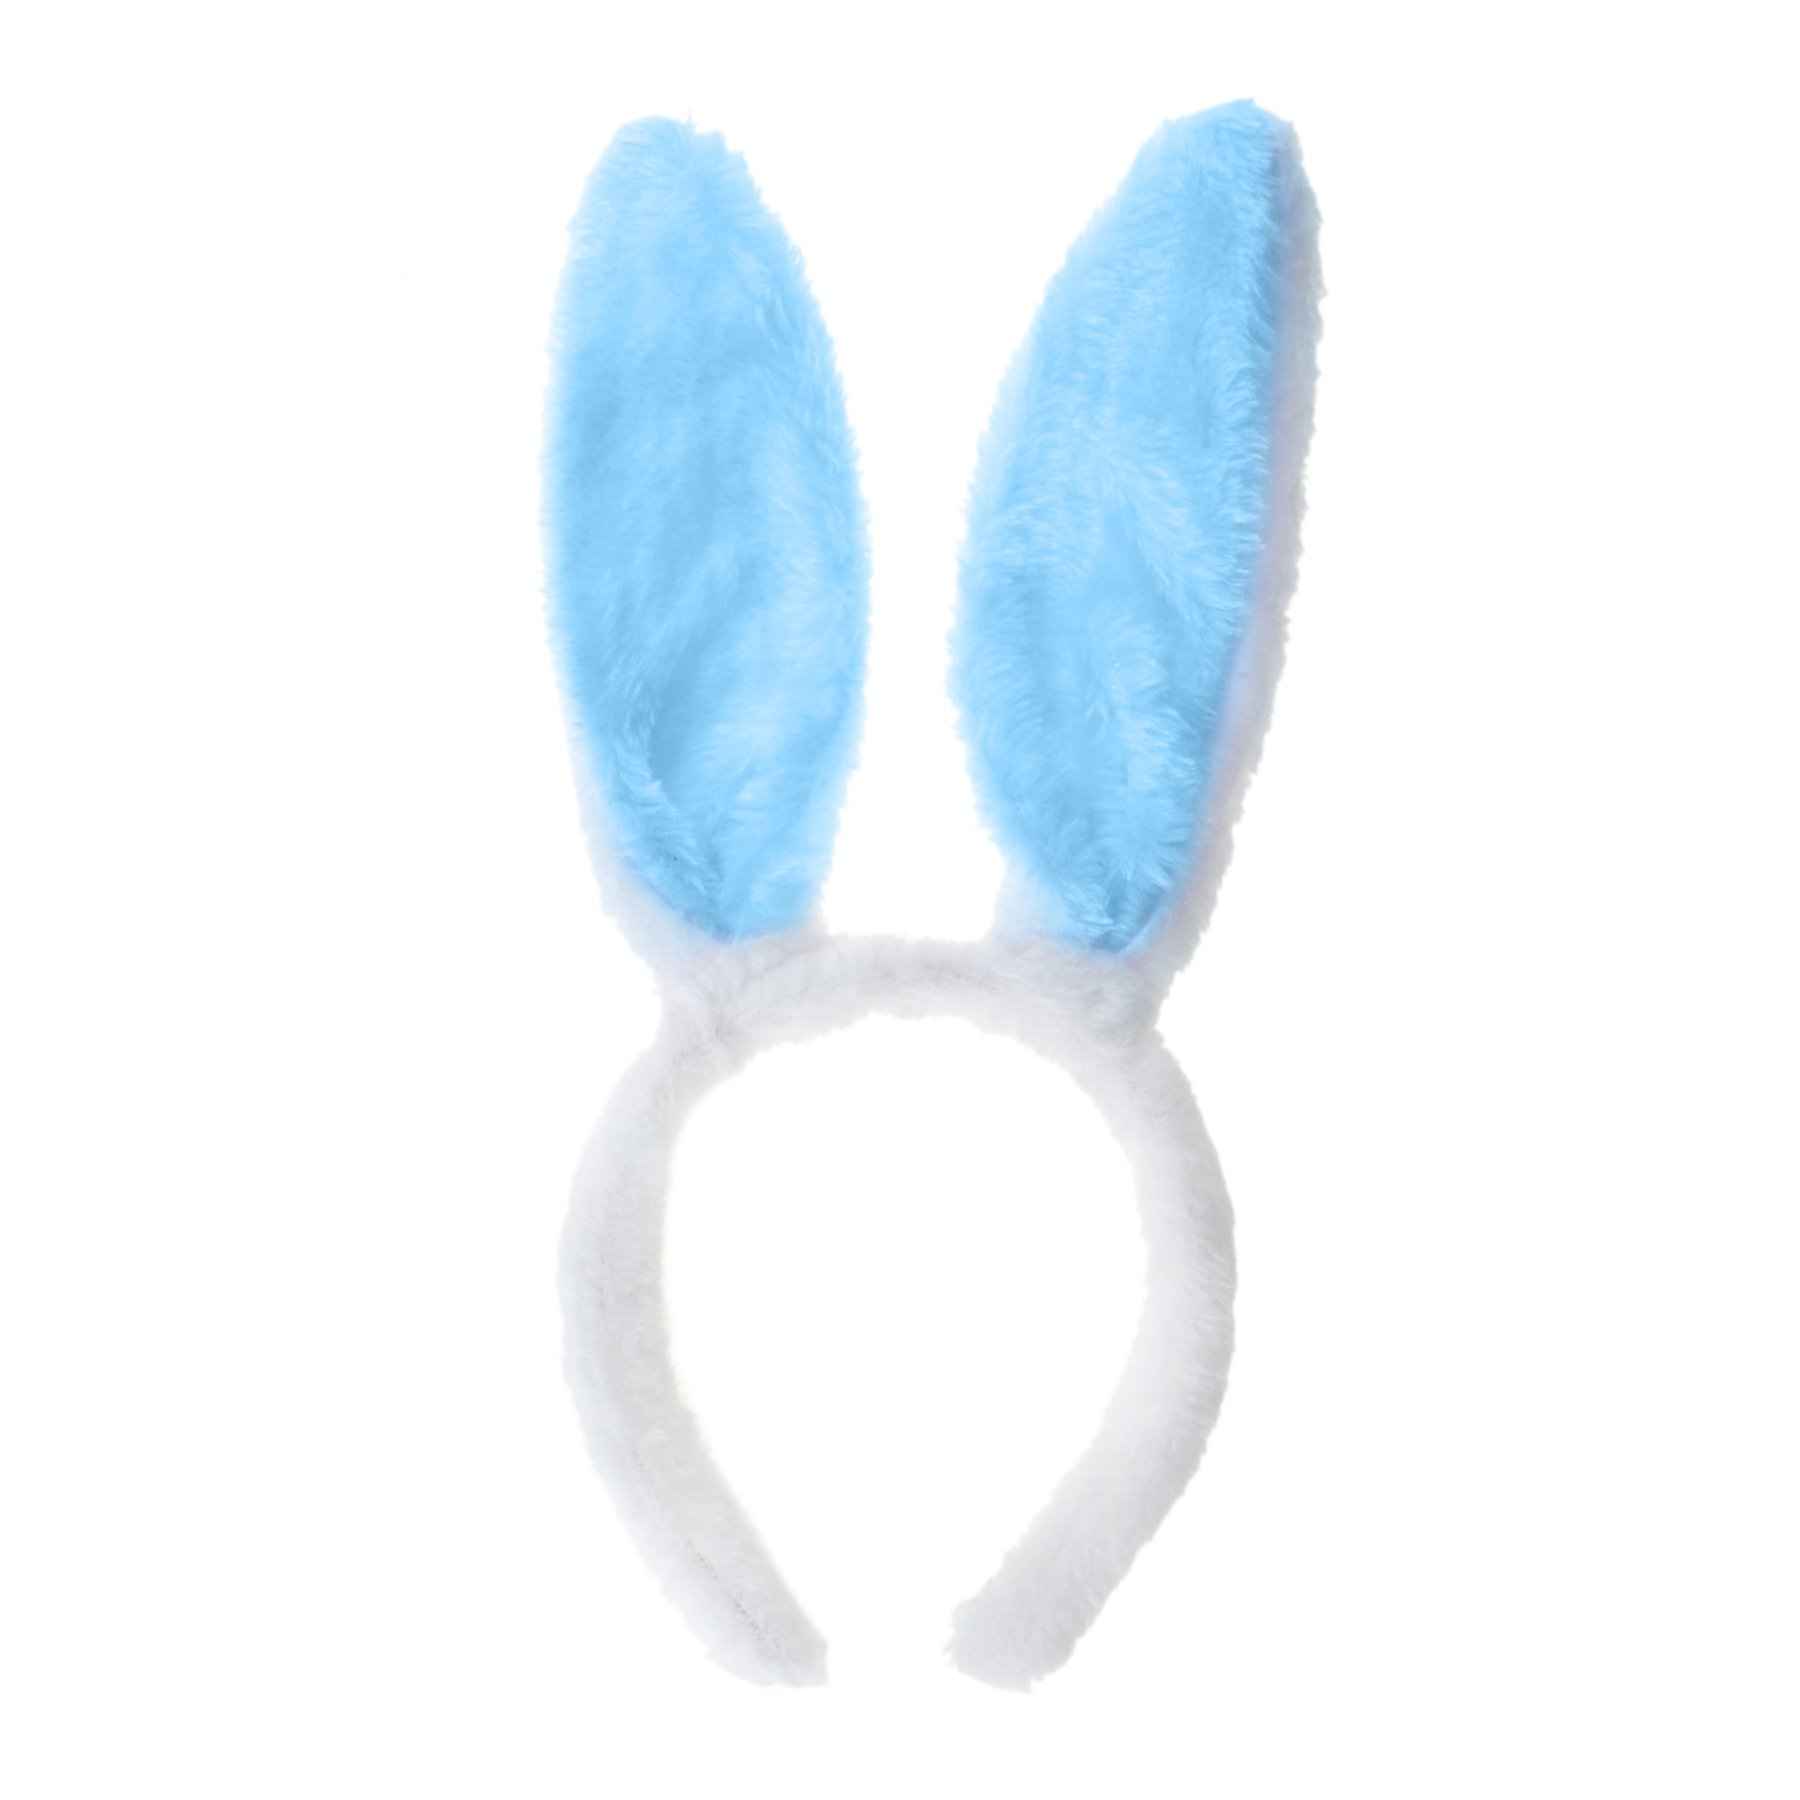 Toptie Wholesale Bunny Ears Headband, Soft Touch Plush Cosplay Party Accessory-Blue-120PCS